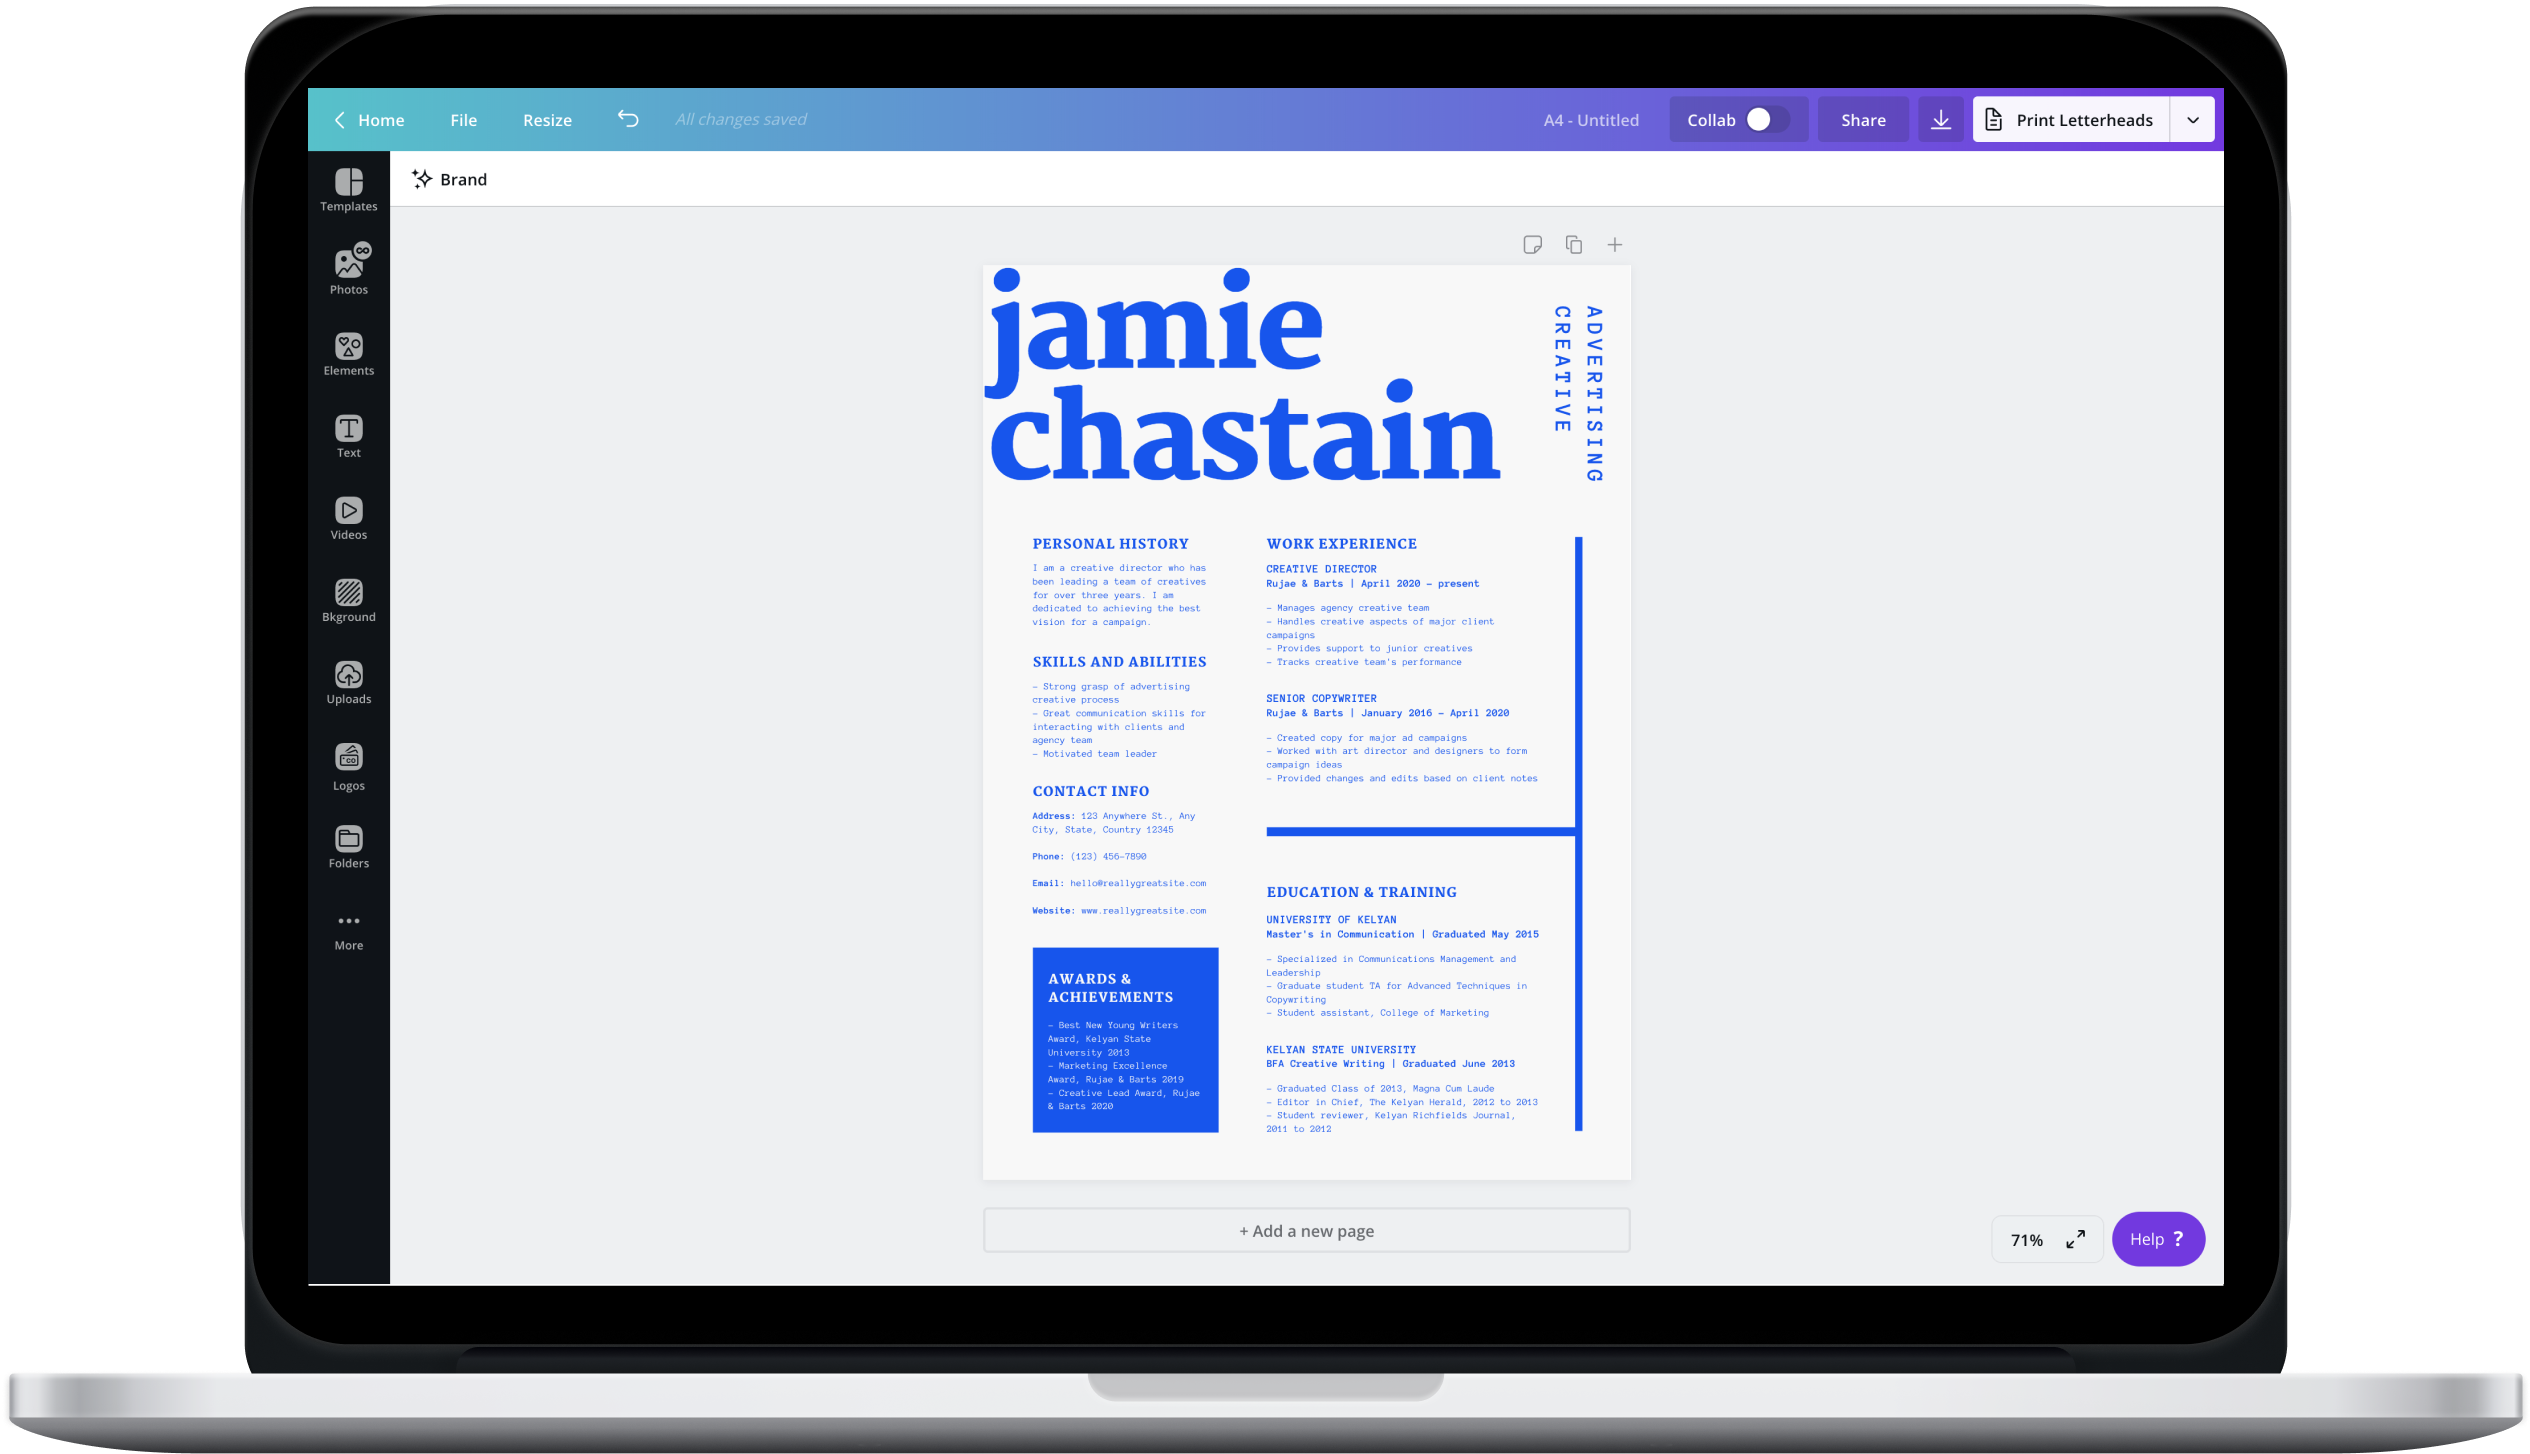 Canva editor showing a blue resume design